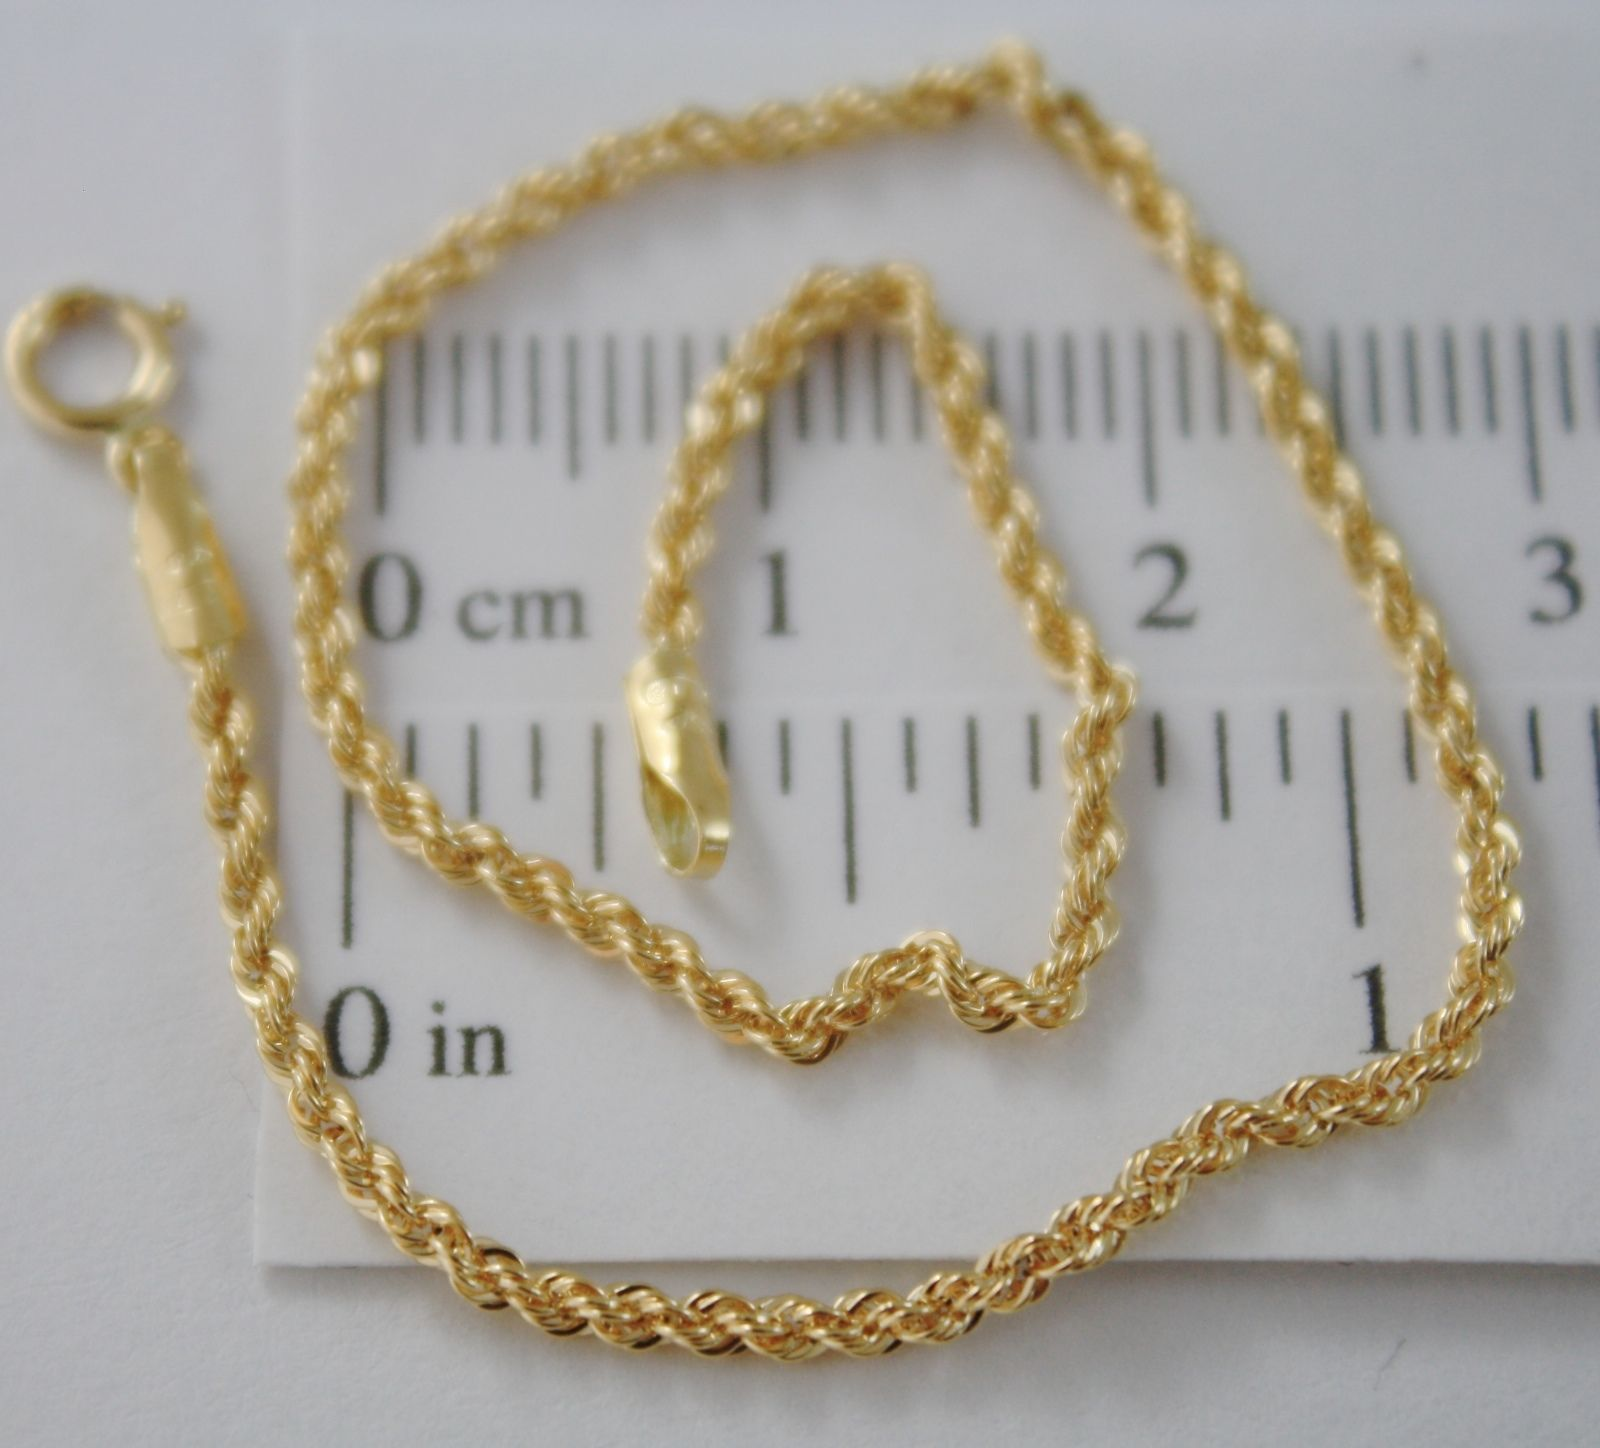 SOLID 18K YELLOW GOLD BRACELET, BRAID ROPE MESH, 7.30 INCH LONG, MADE IN ITALY